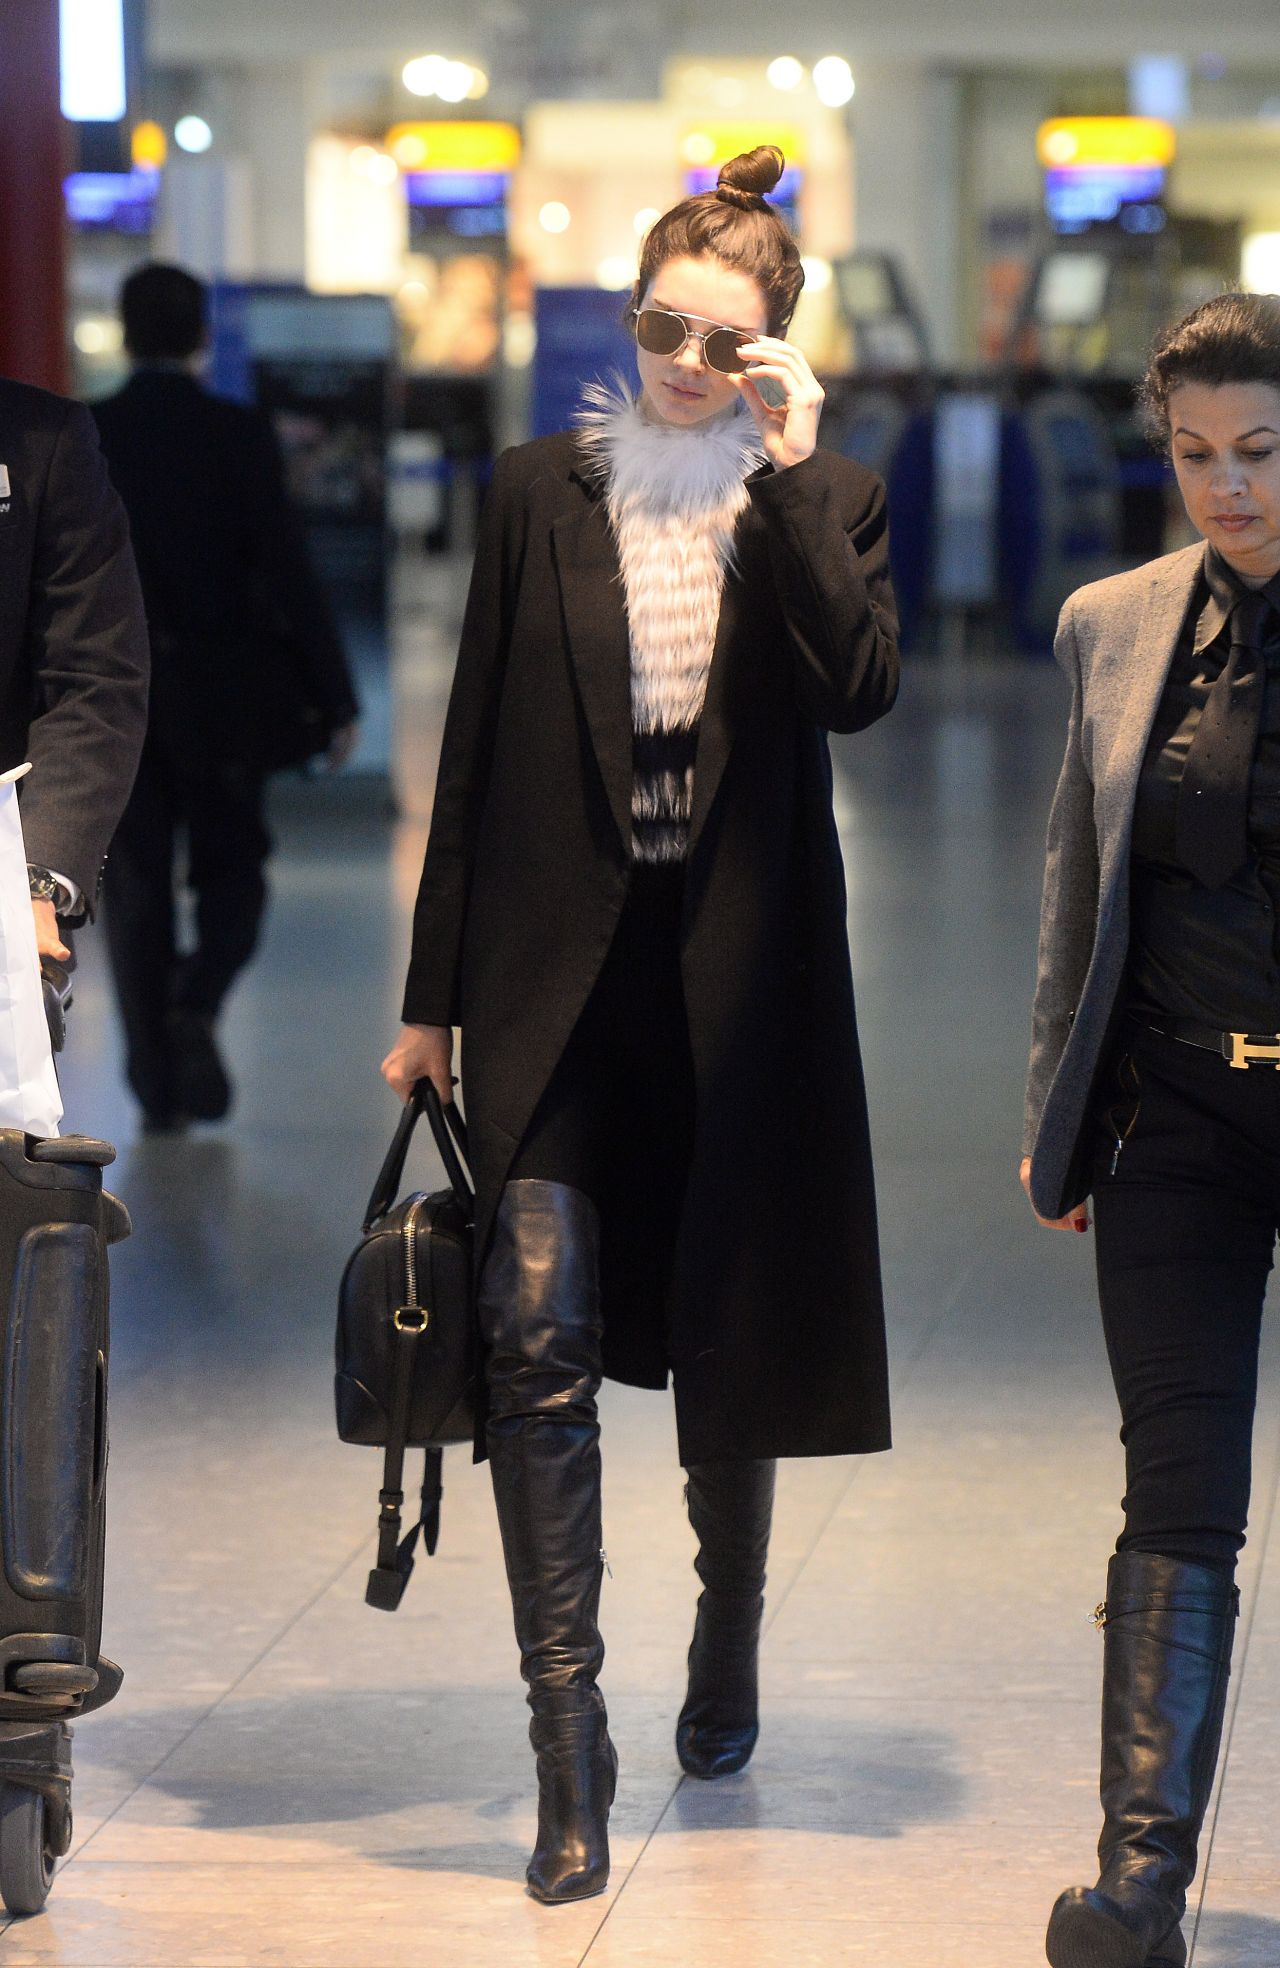 kendall-jenner-arriving-at-london-heathrow-airport-december-2015_1